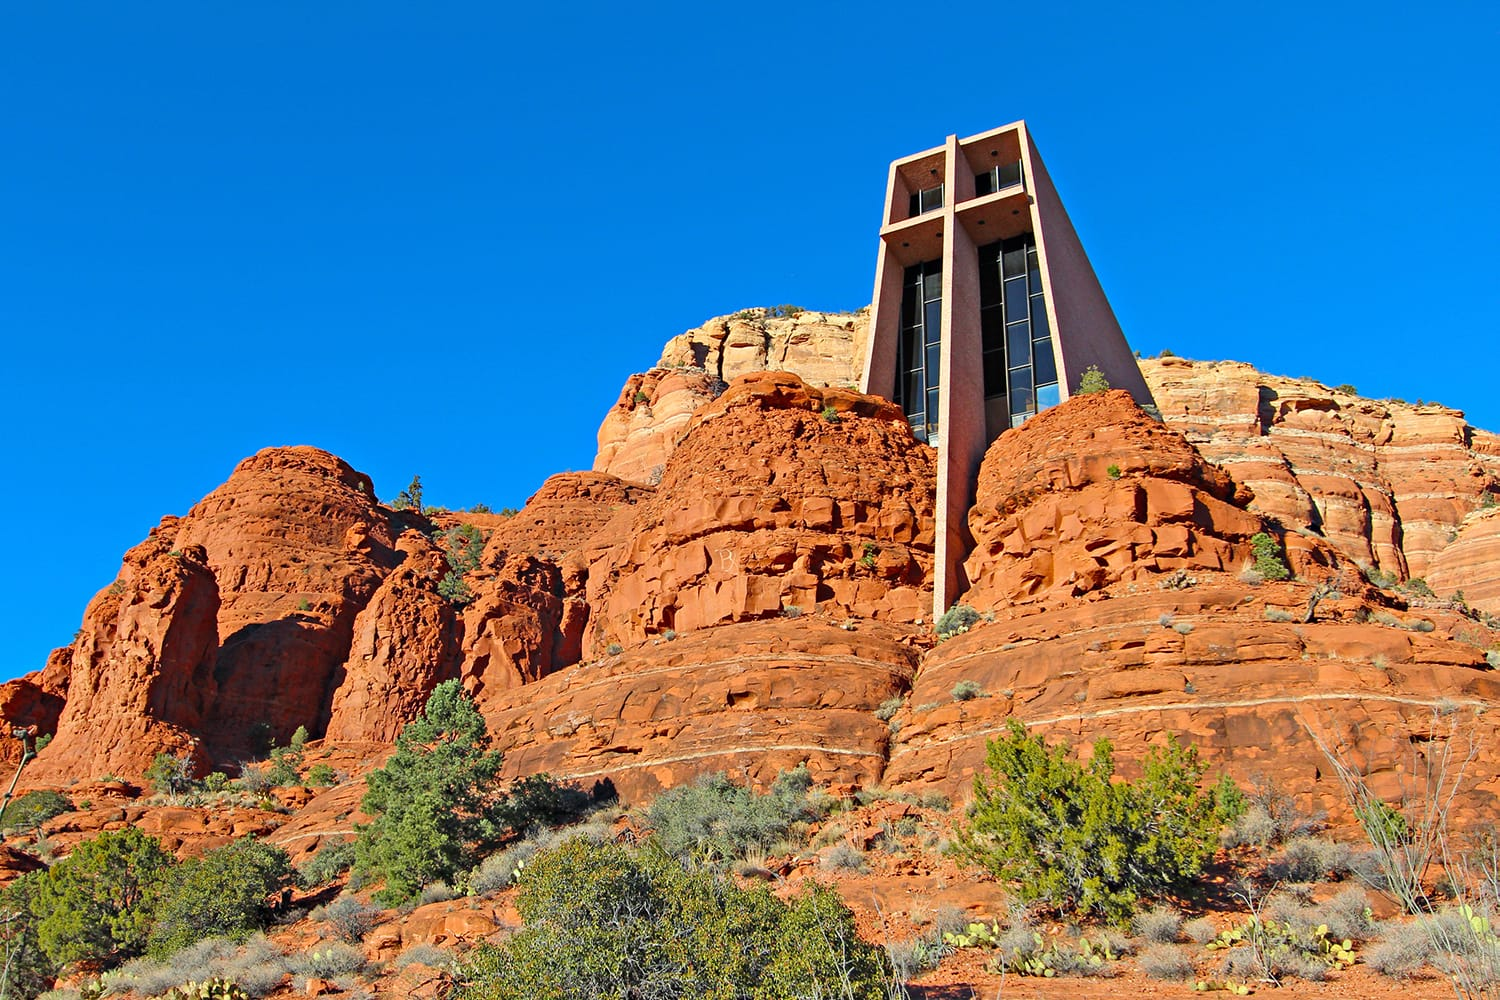 The Chapel of the Holy Cross set among red rocks in Sedona, Arizona